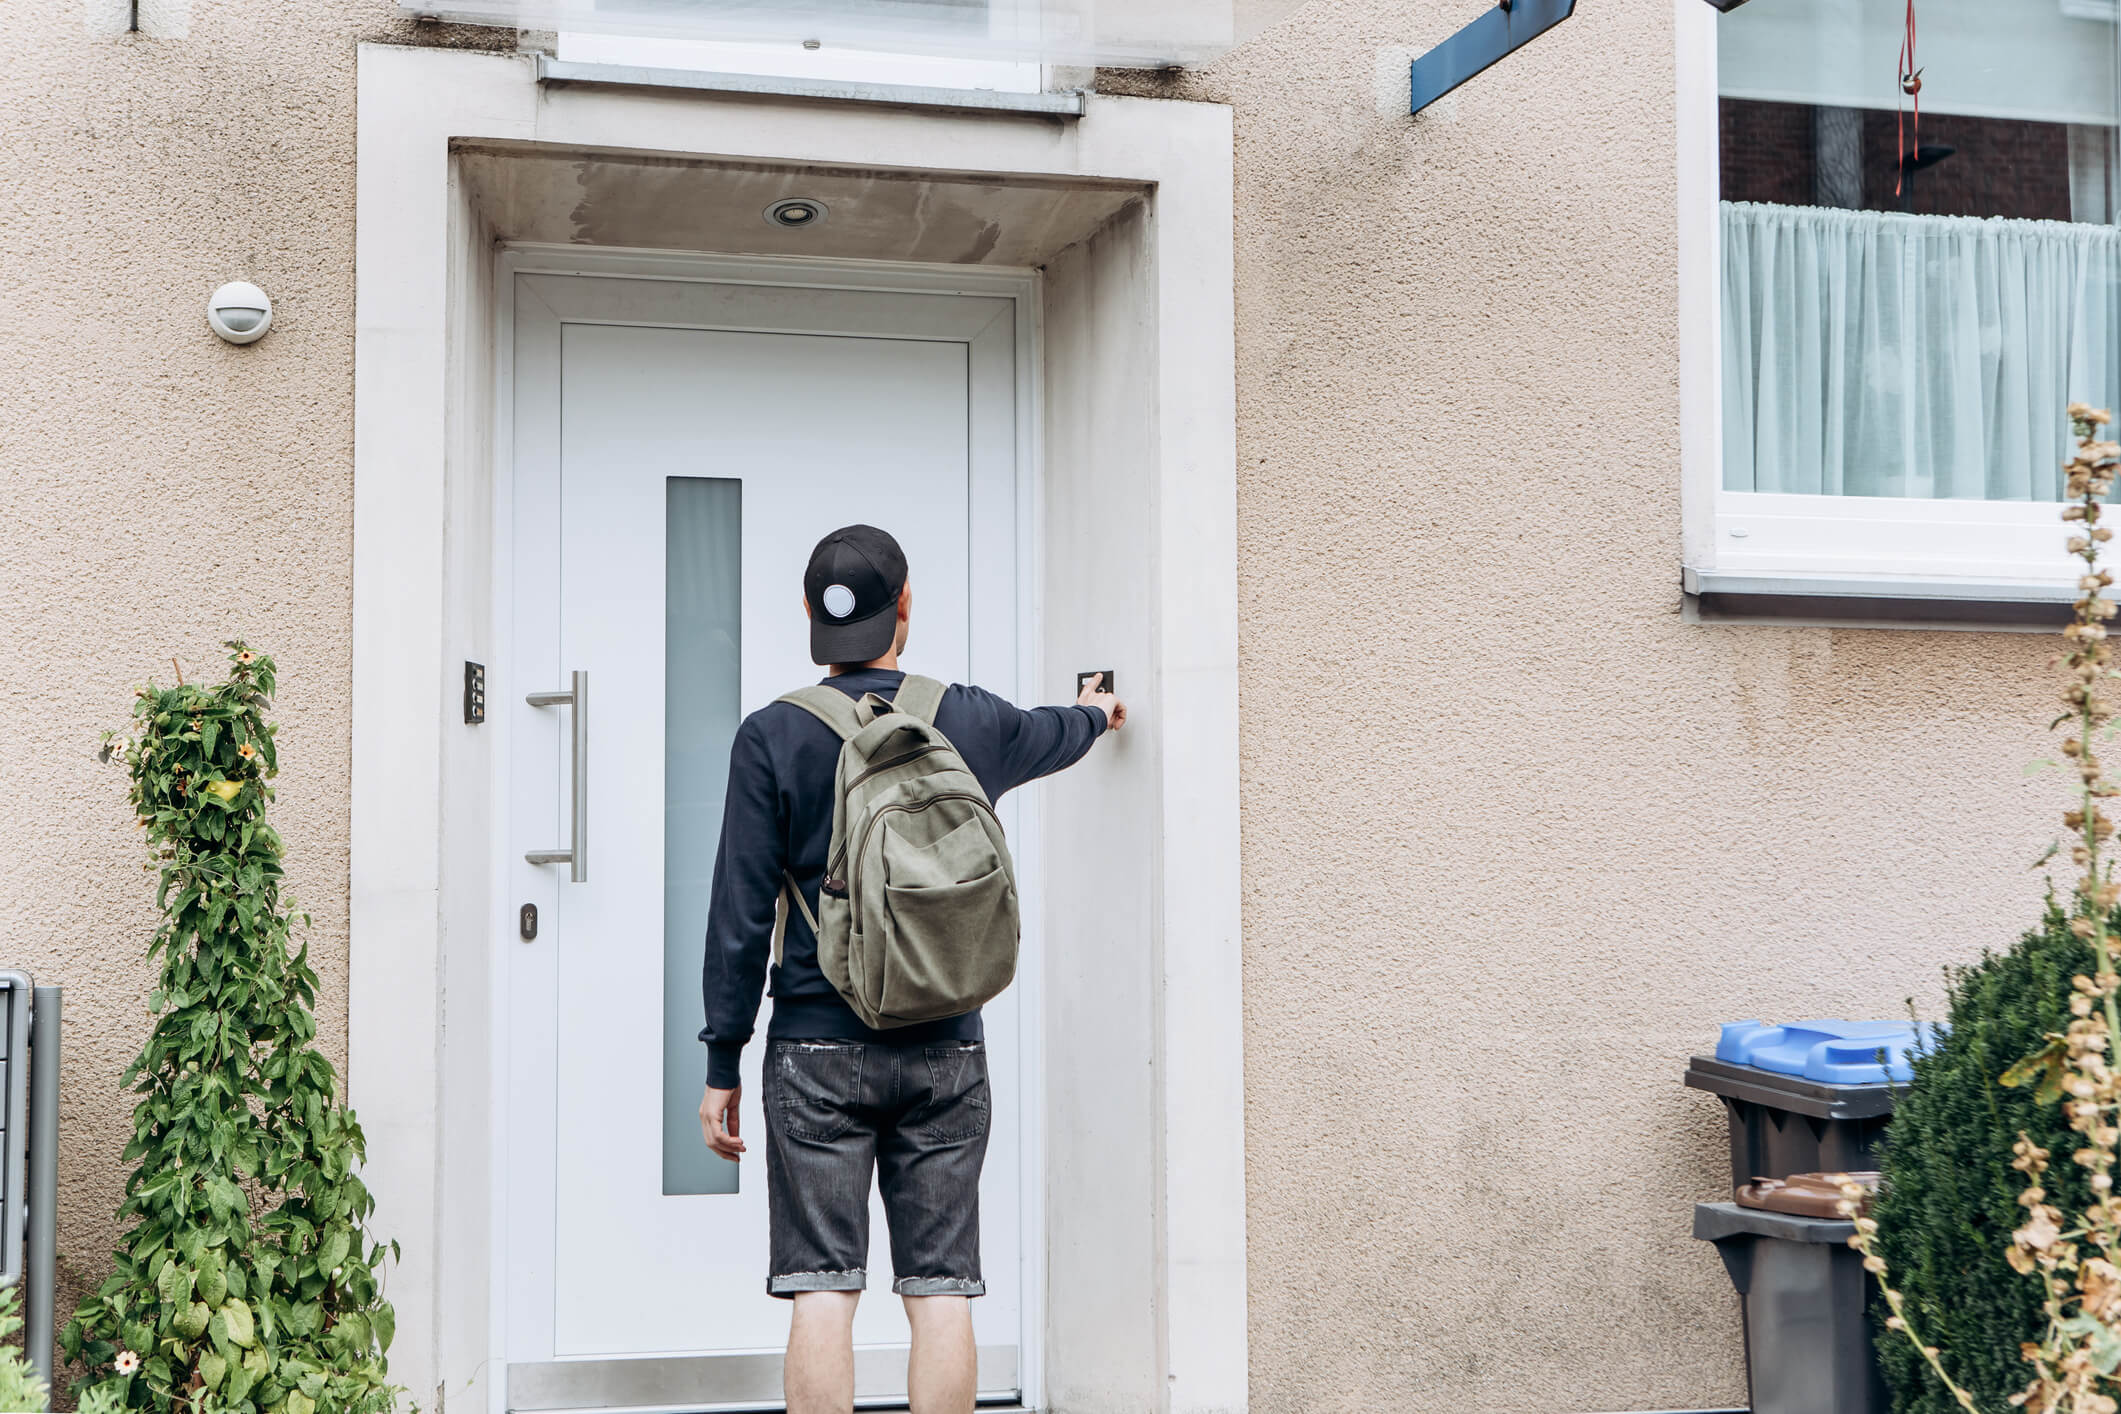 Person with baseball cap and backpack rings a doorbell